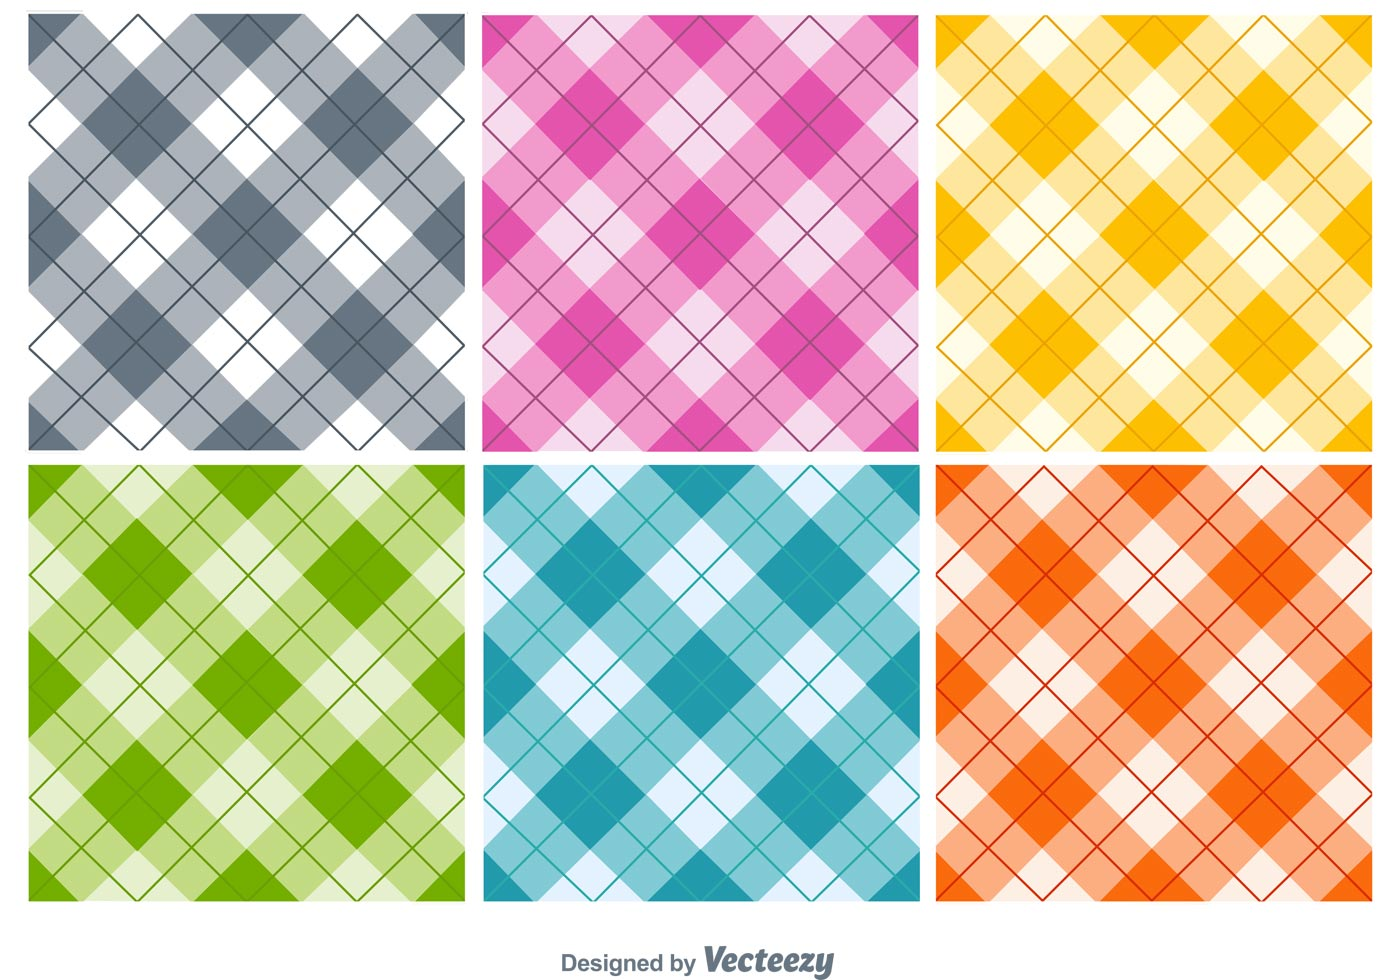 Patterns graphic library Pattern Free Vector Art - (11875 Free Downloads) graphic library